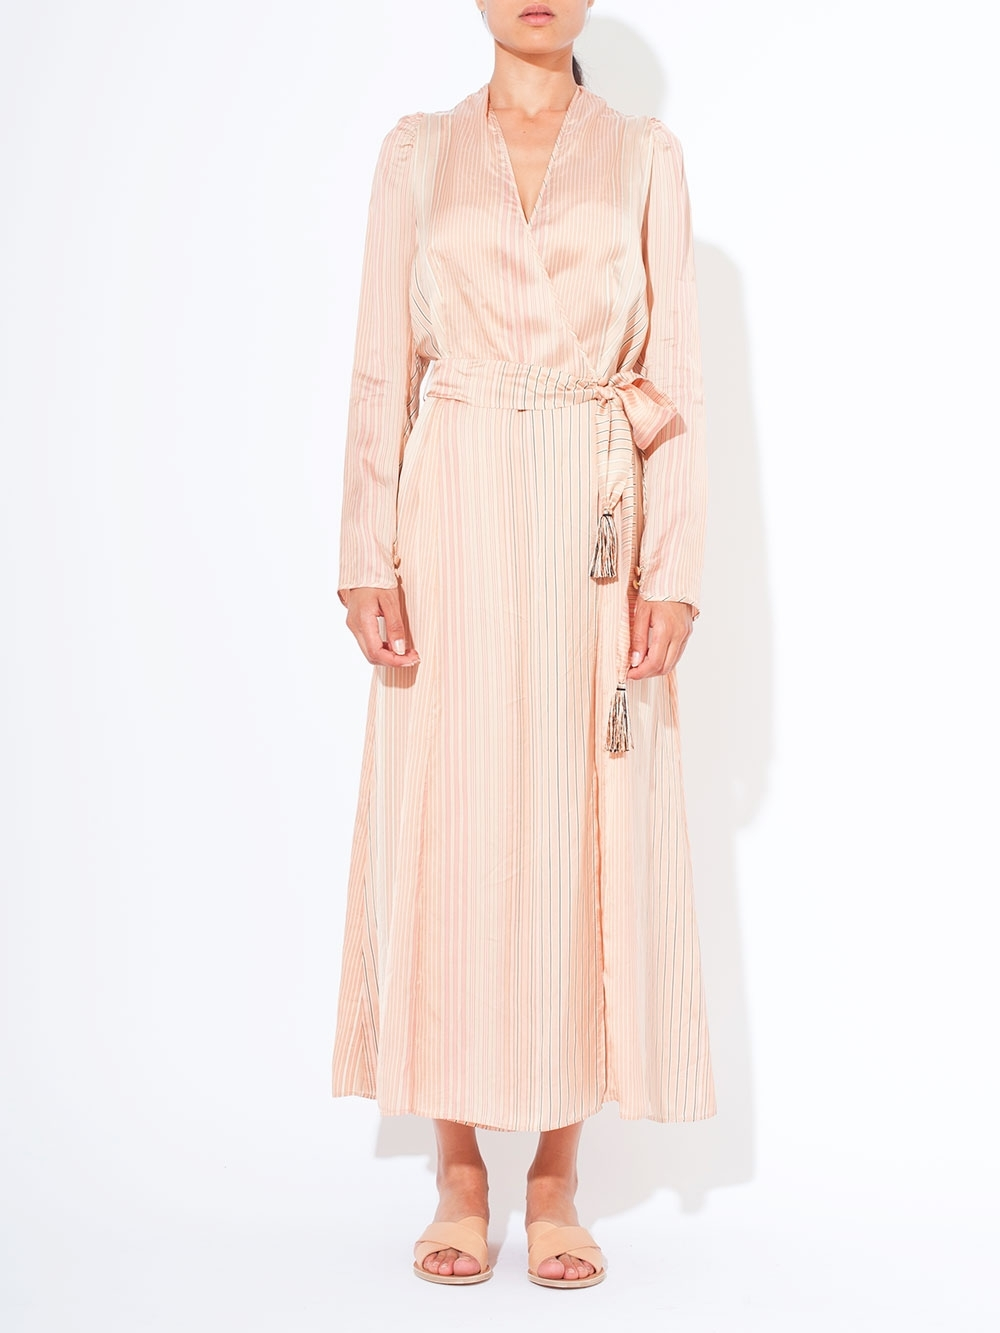 Robe Longue A Rayures Robe Longue Porte Feuille En Soie A Fines Rayures I Roseanna I By Marie